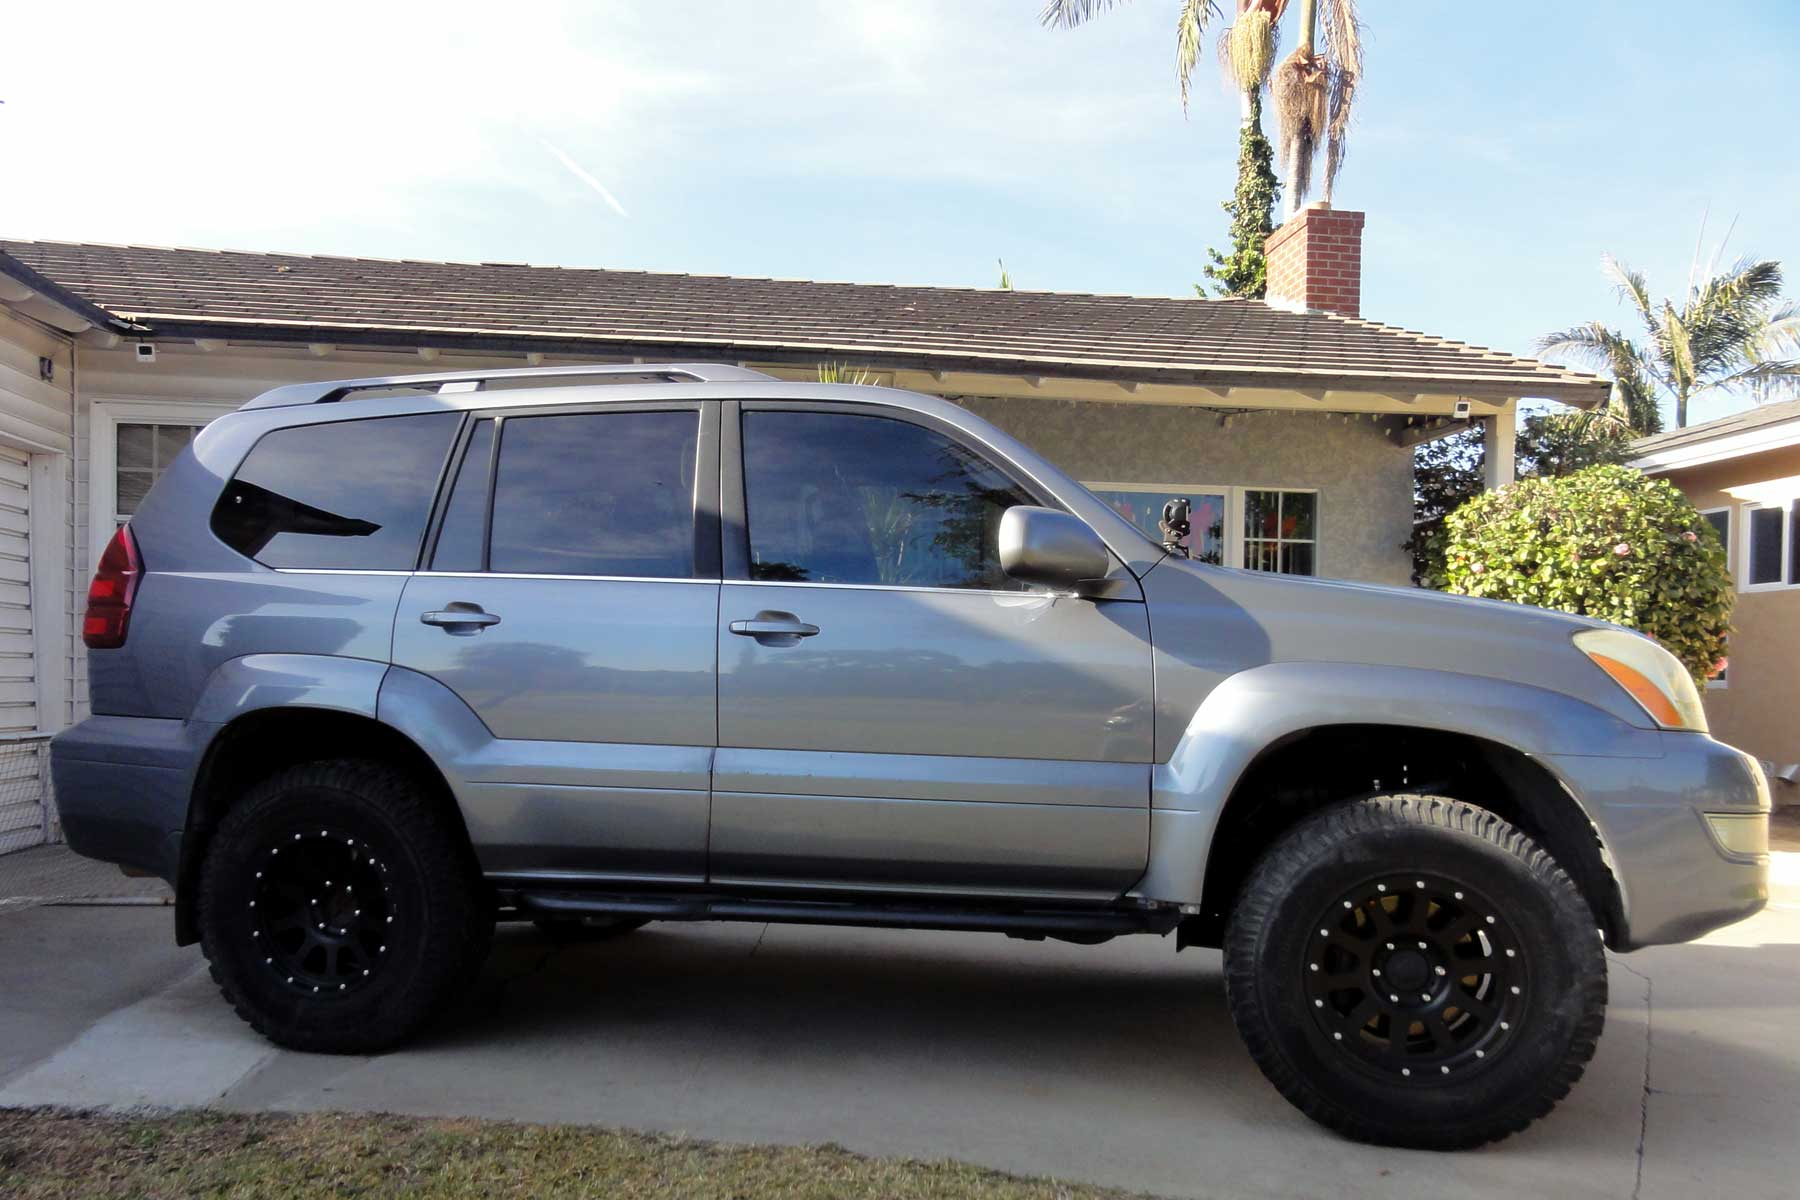 Why do you own a GX 470 instead of a 100 series LC or LX? | IH8MUD Forum